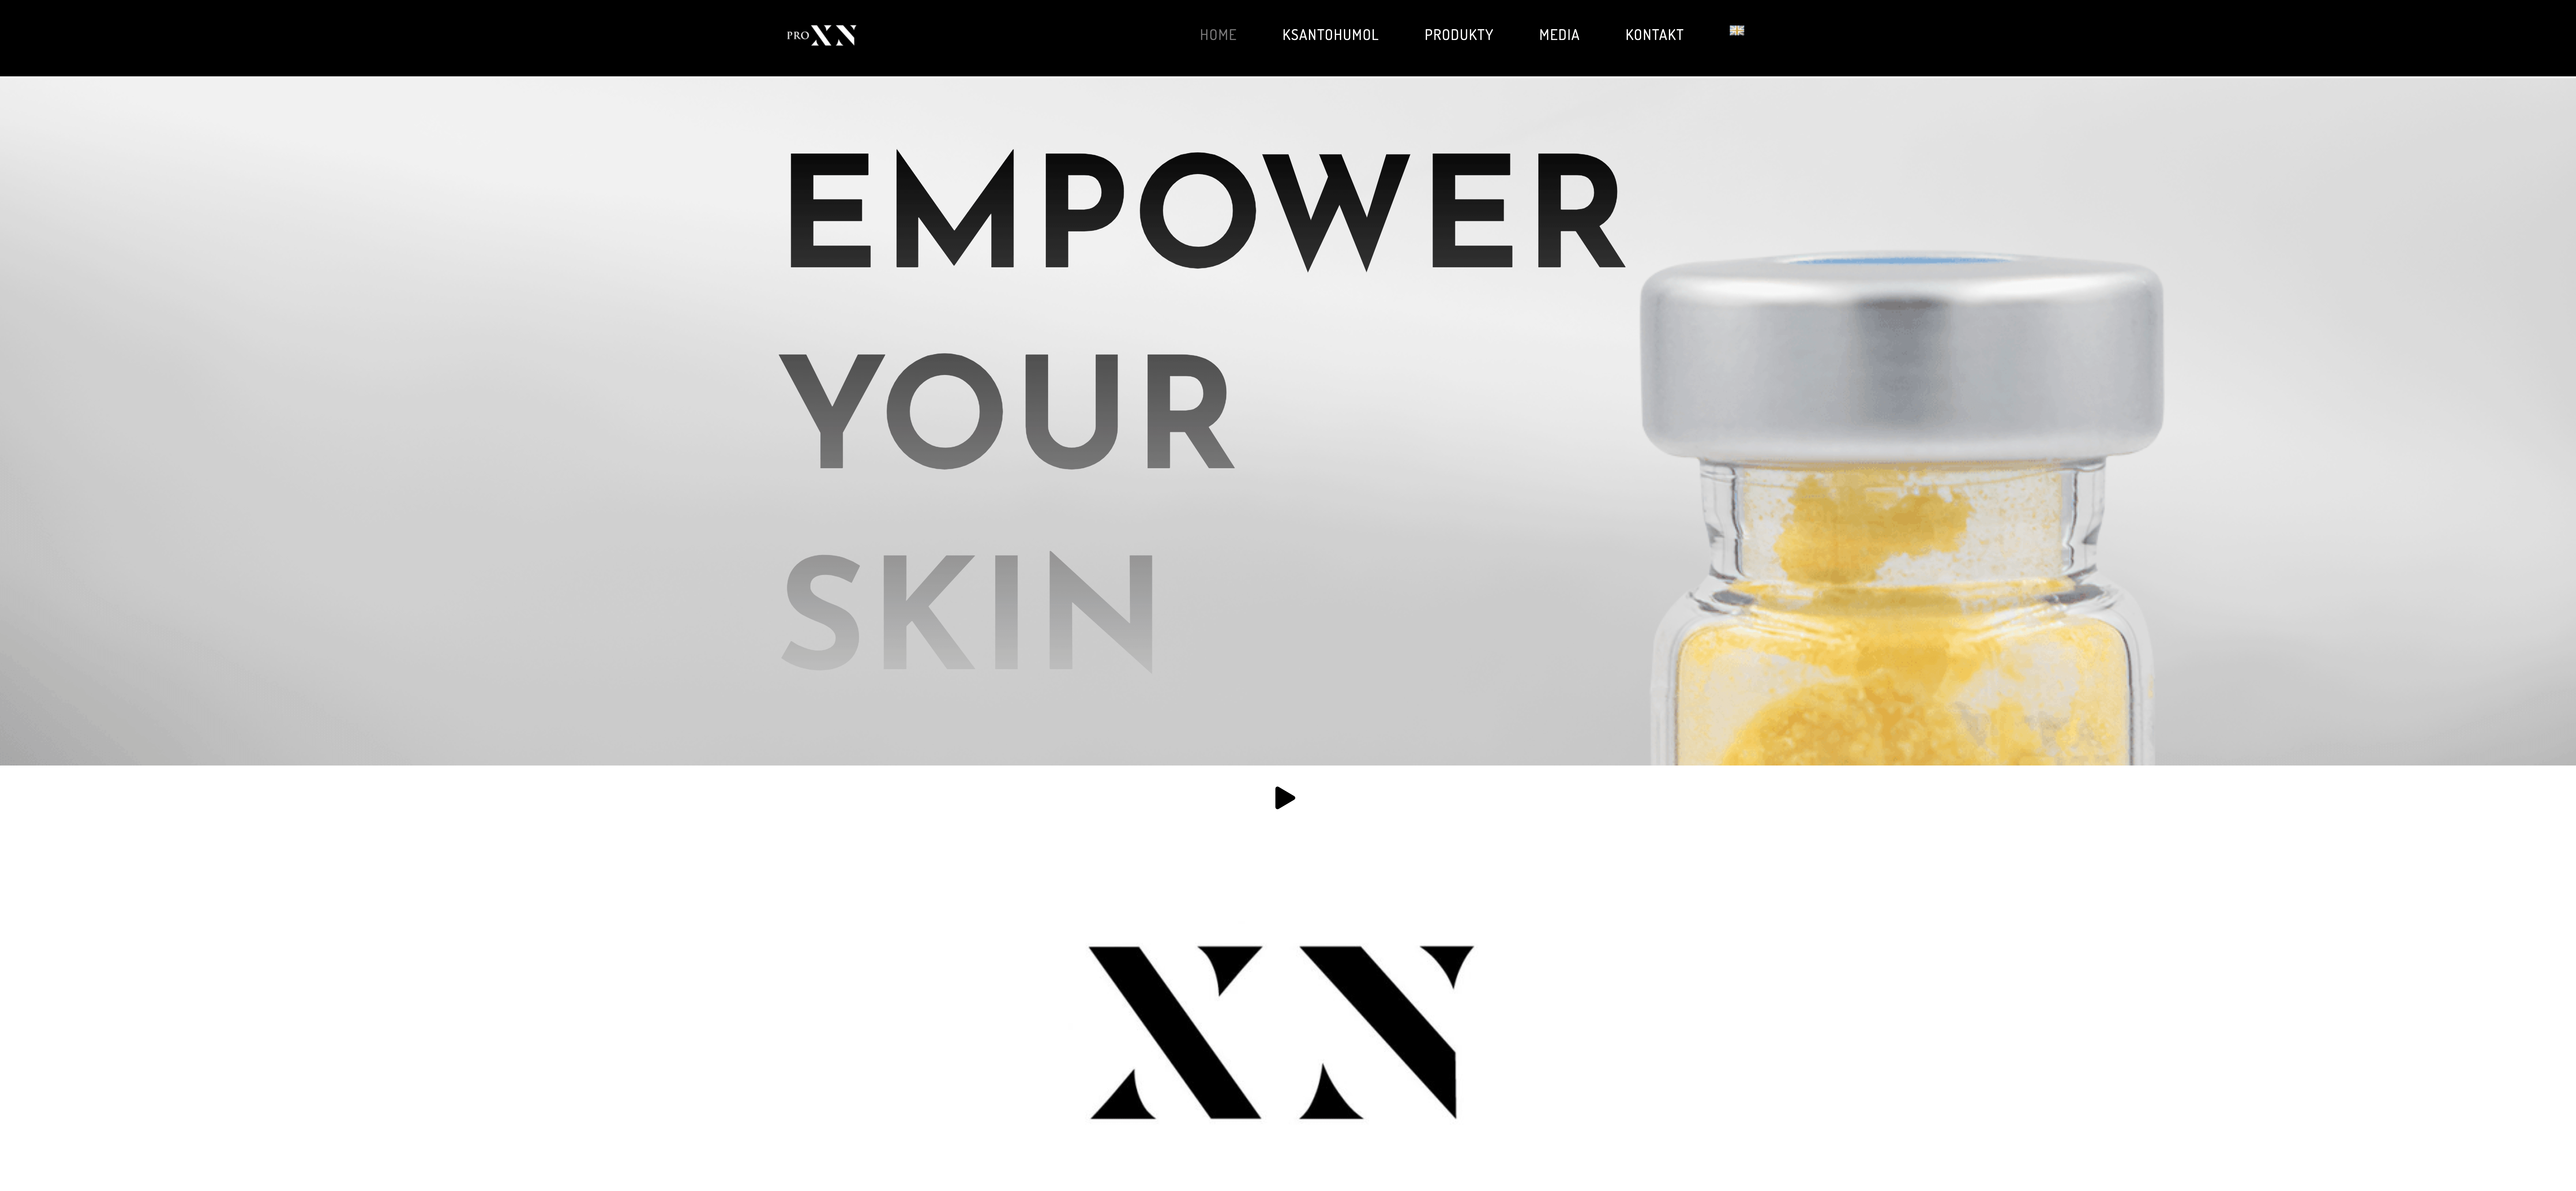 home pro - PRO-XN Empower Your Skin 2019-09-13 18-54-22